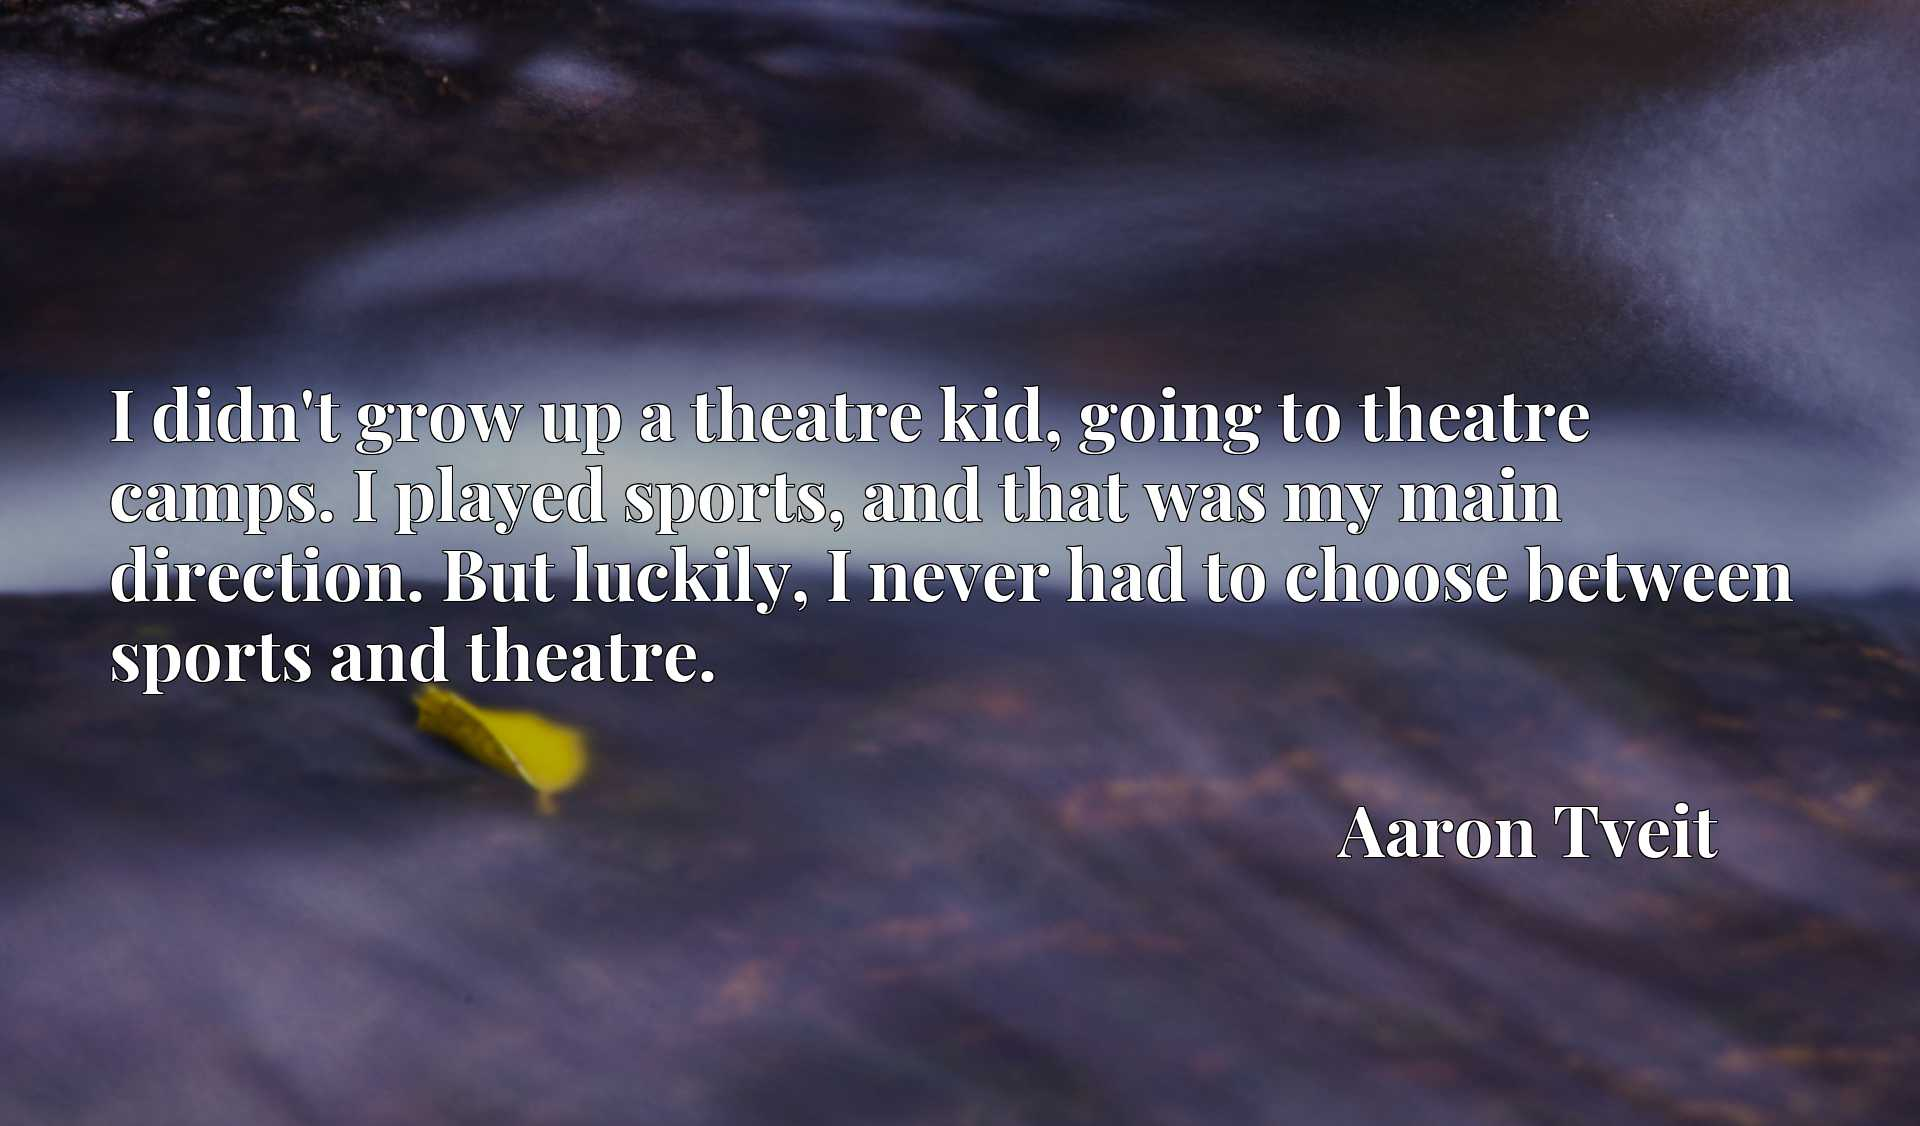 I didn't grow up a theatre kid, going to theatre camps. I played sports, and that was my main direction. But luckily, I never had to choose between sports and theatre.